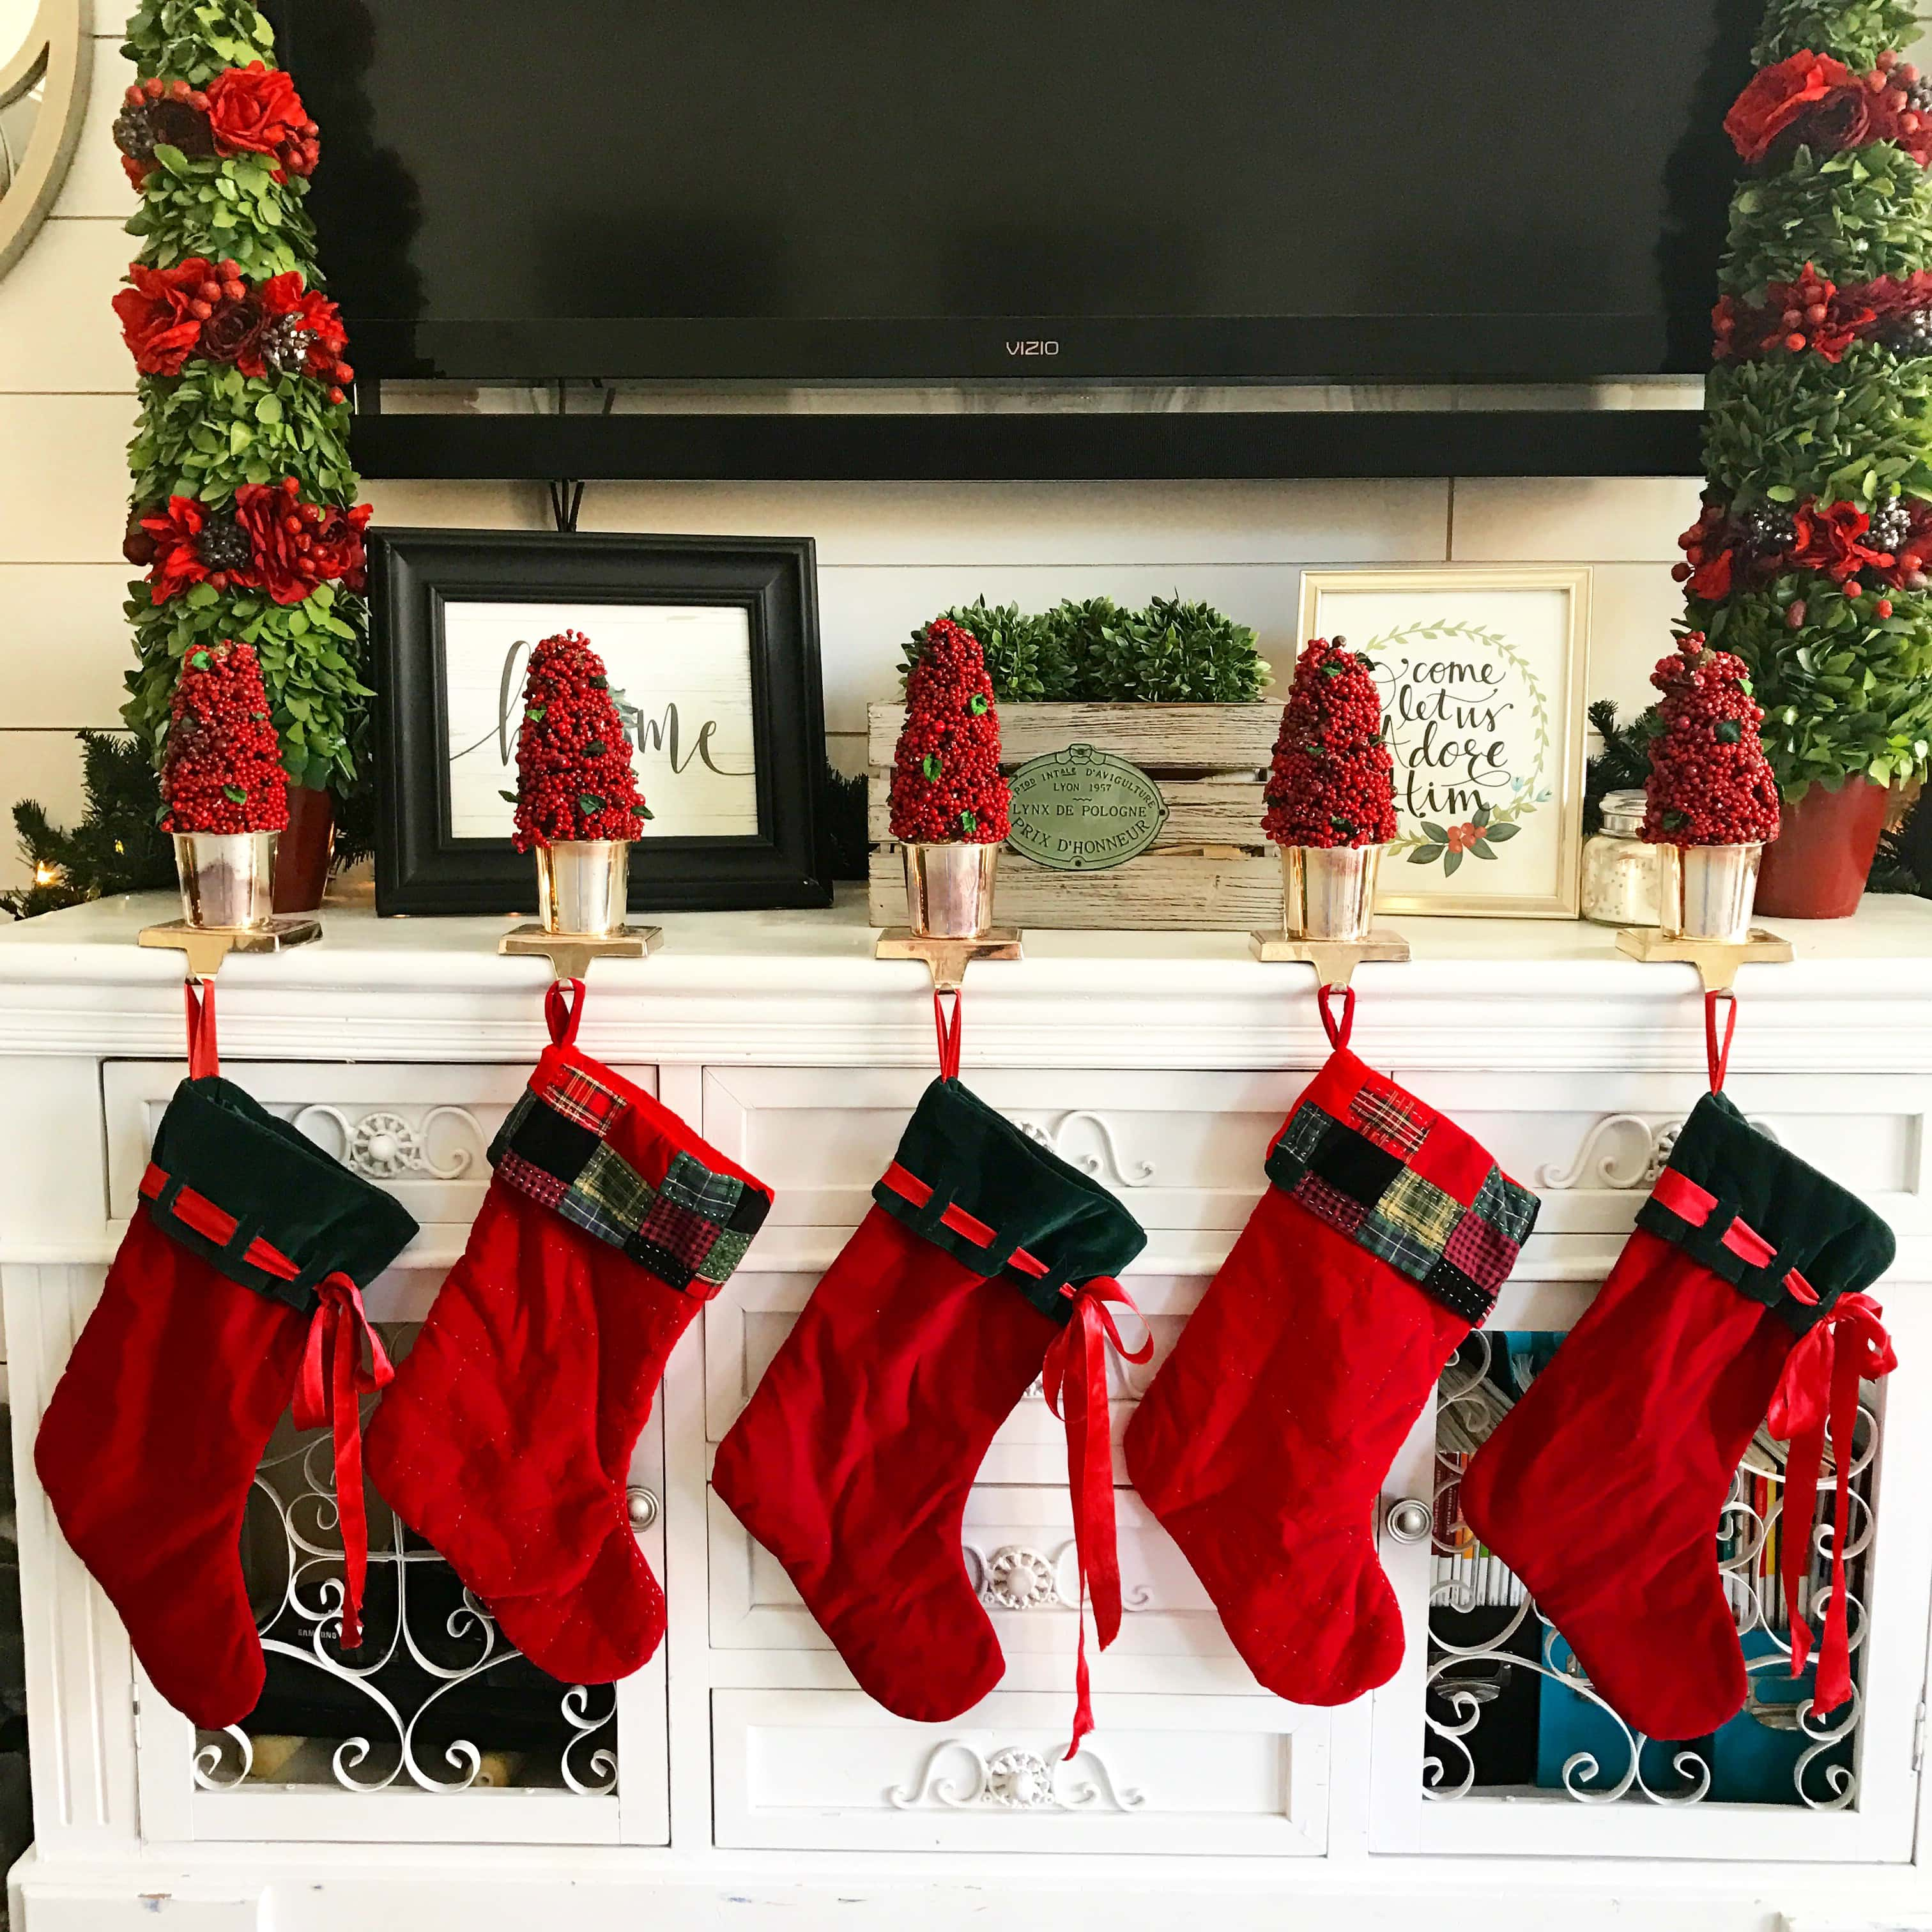 Christmas Decor Ideas by Modern Honey. Stockings display in family room.